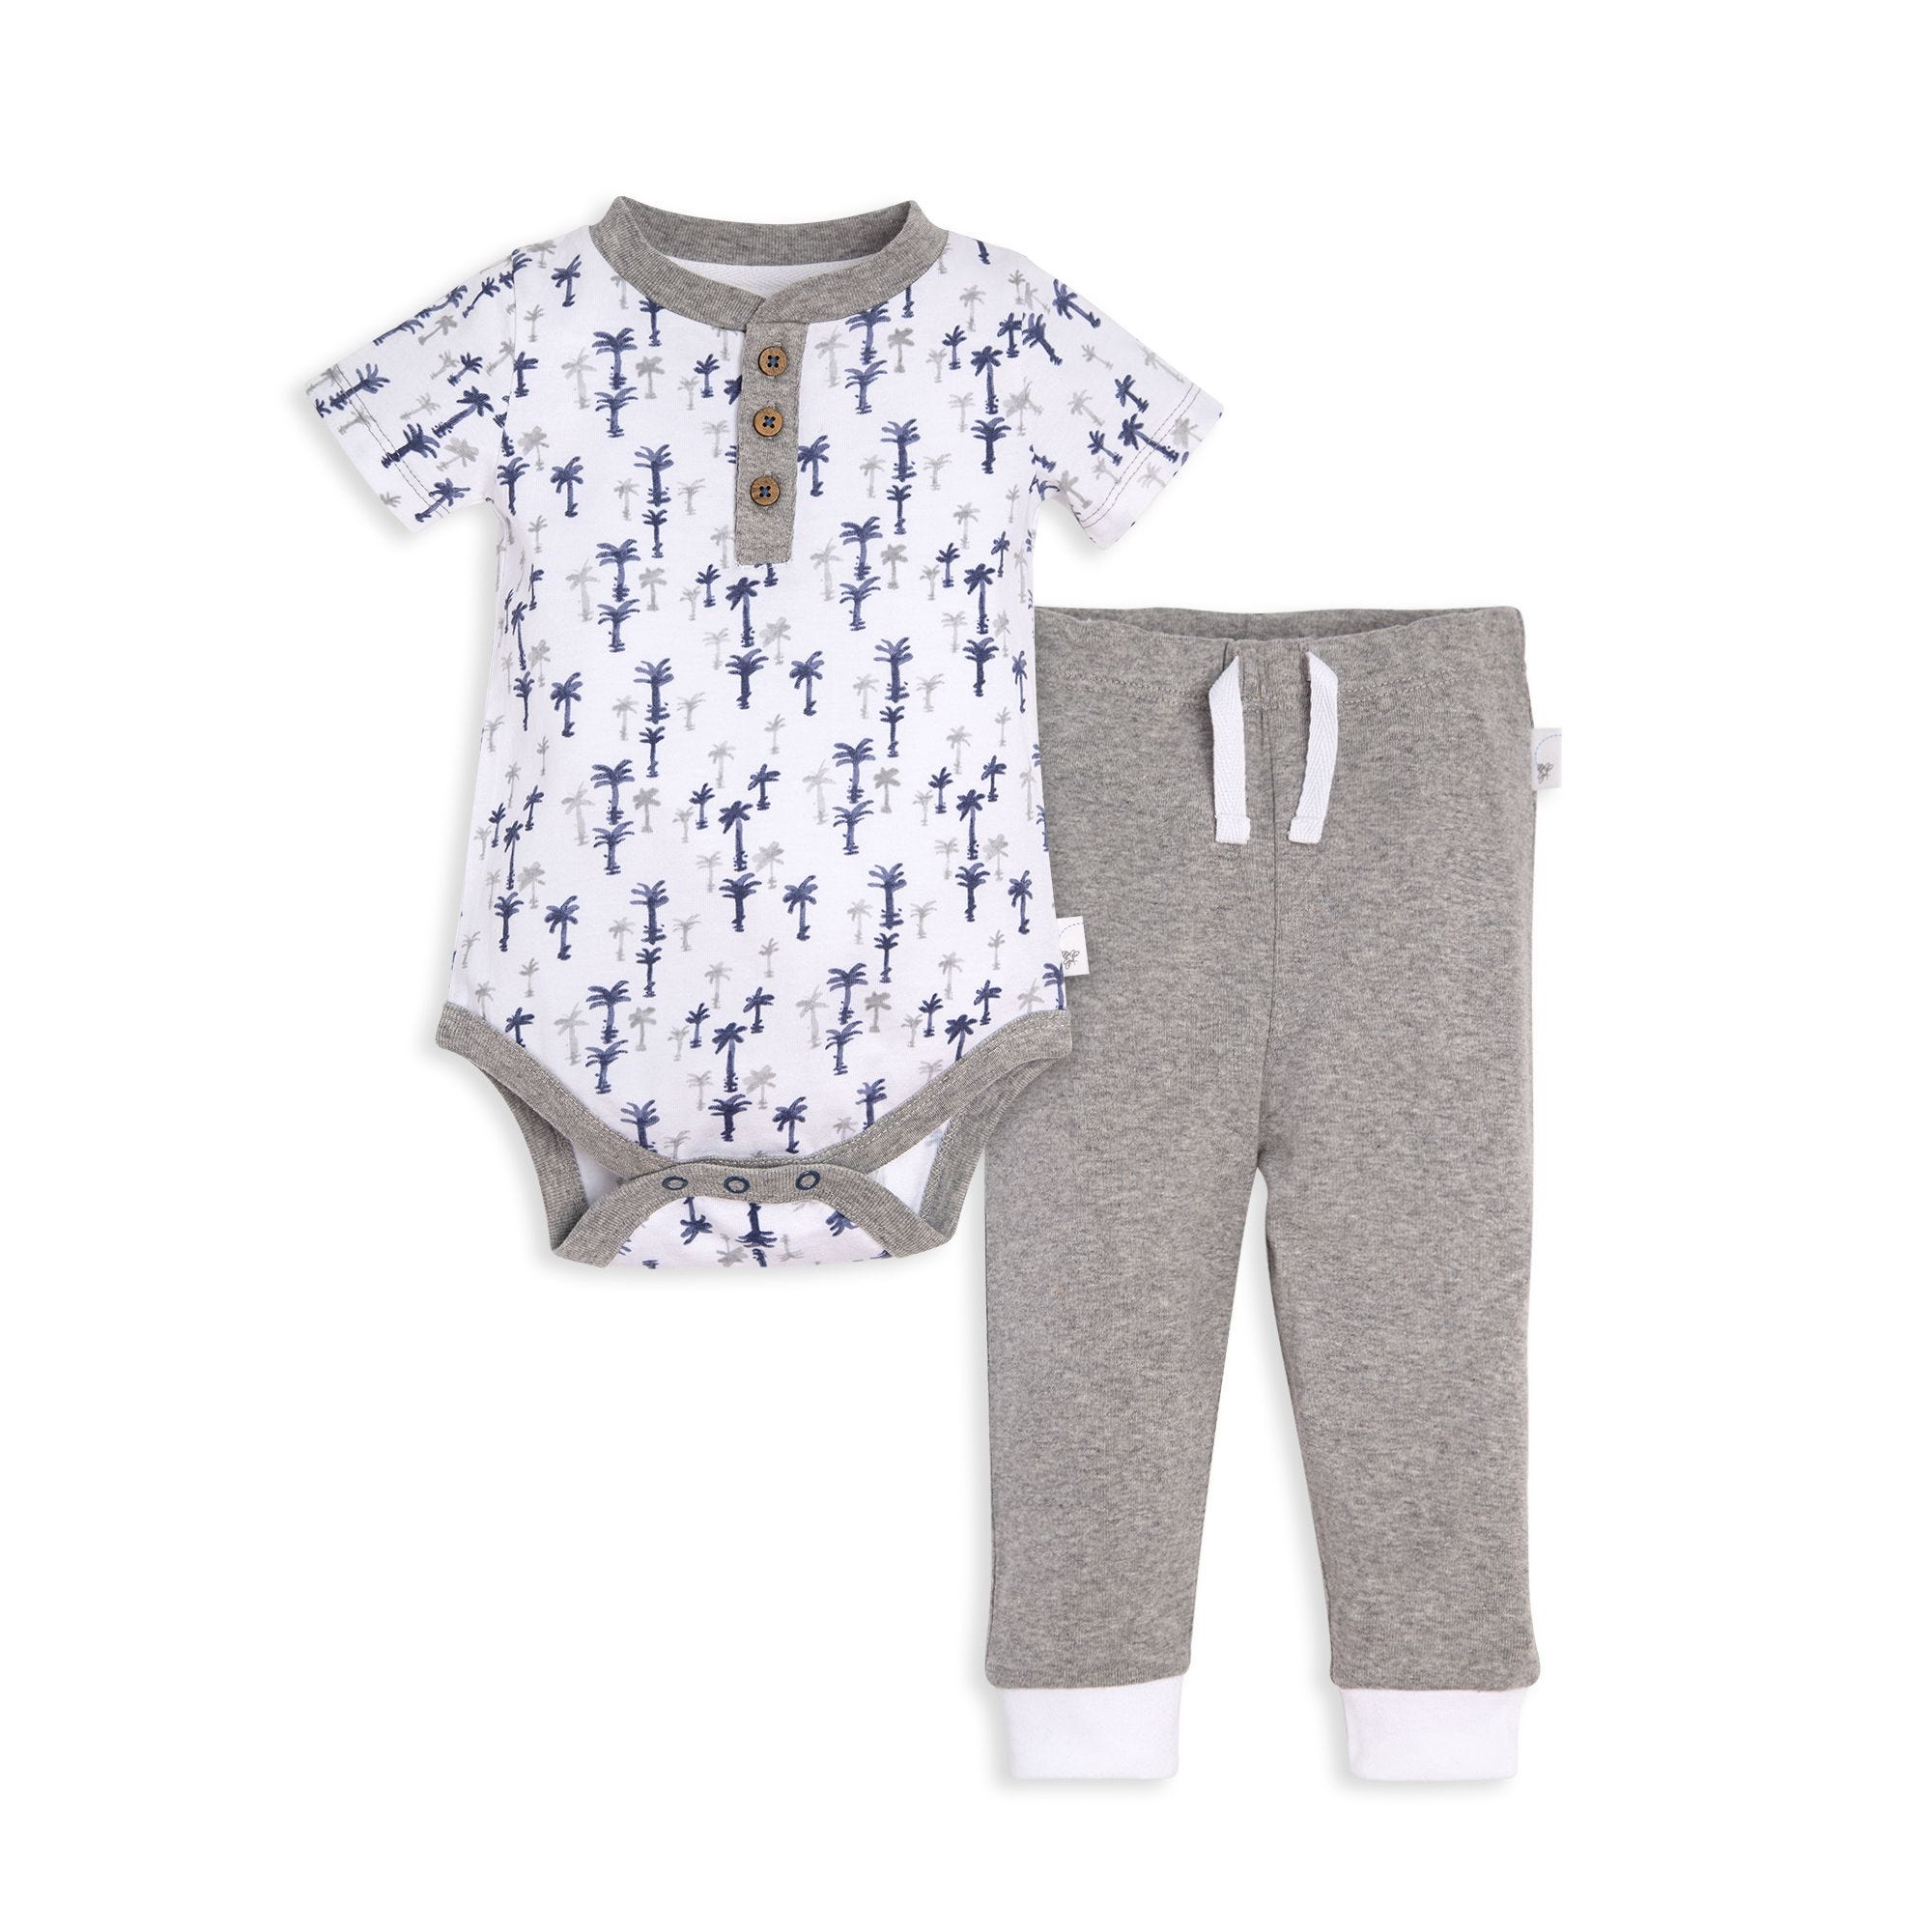 fa8e0fafcd62 Breezy Palm Trees Organic Baby Bodysuit and Pant Set